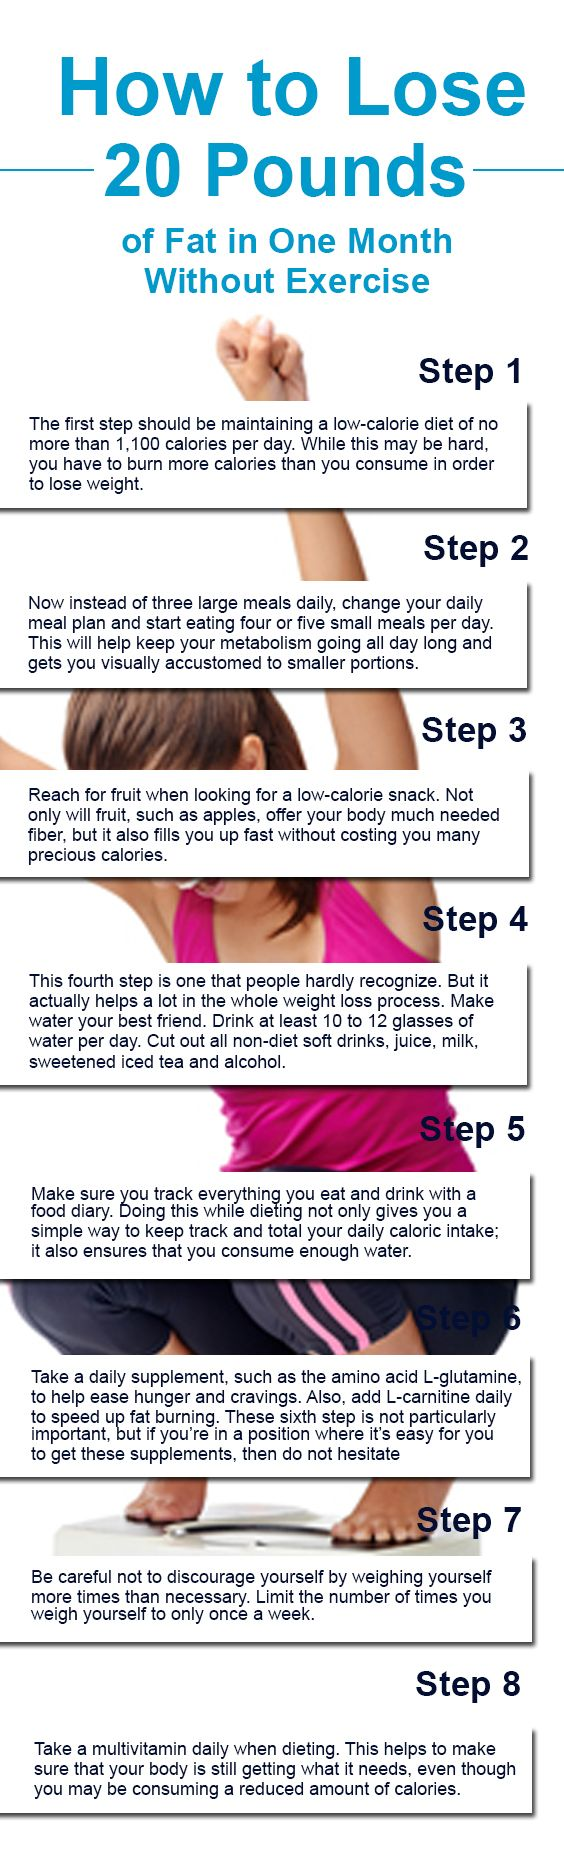 How to Lose 20 Pounds of Fat in One Month Without Exercise